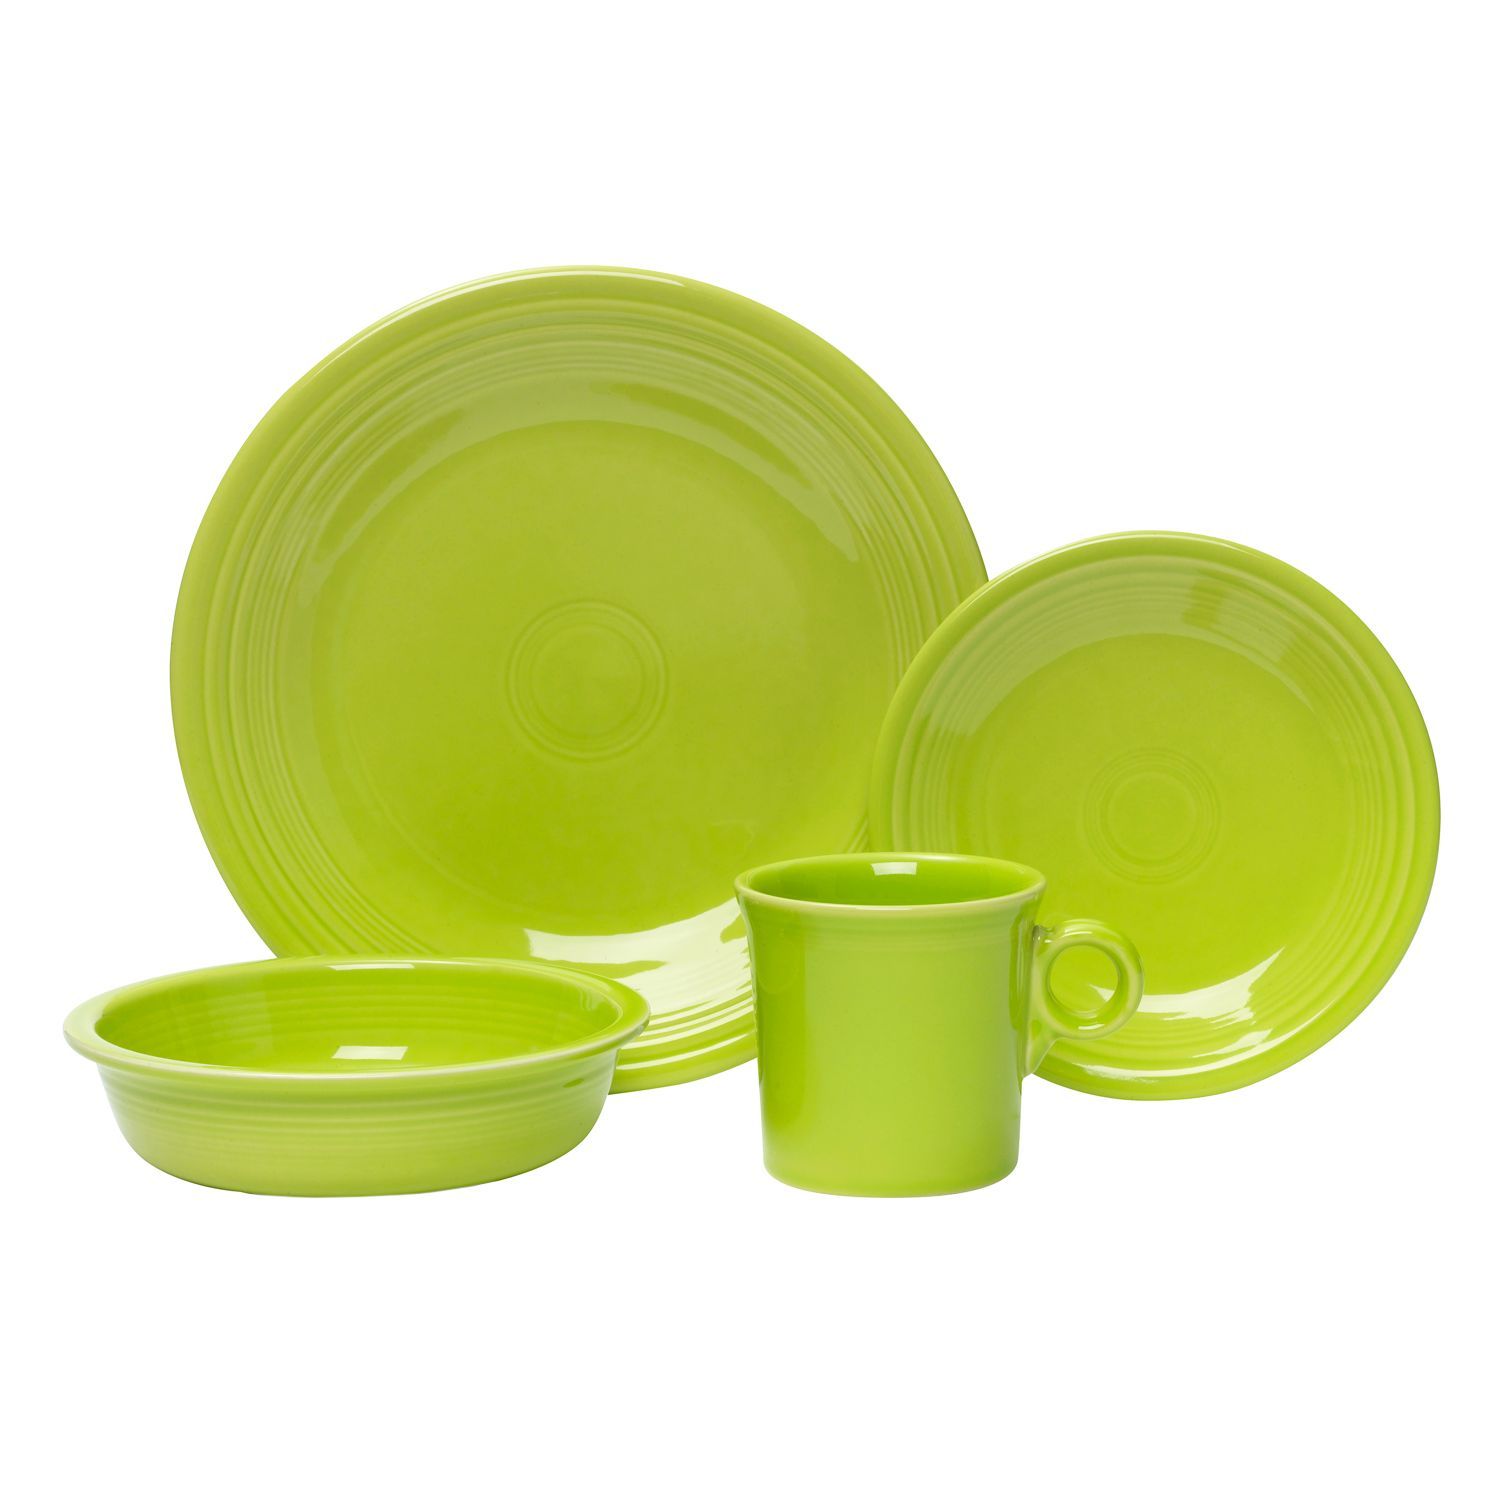 Dinnerware Set  sc 1 st  Kohlu0027s & Fiesta 16-pc. Dinnerware Set